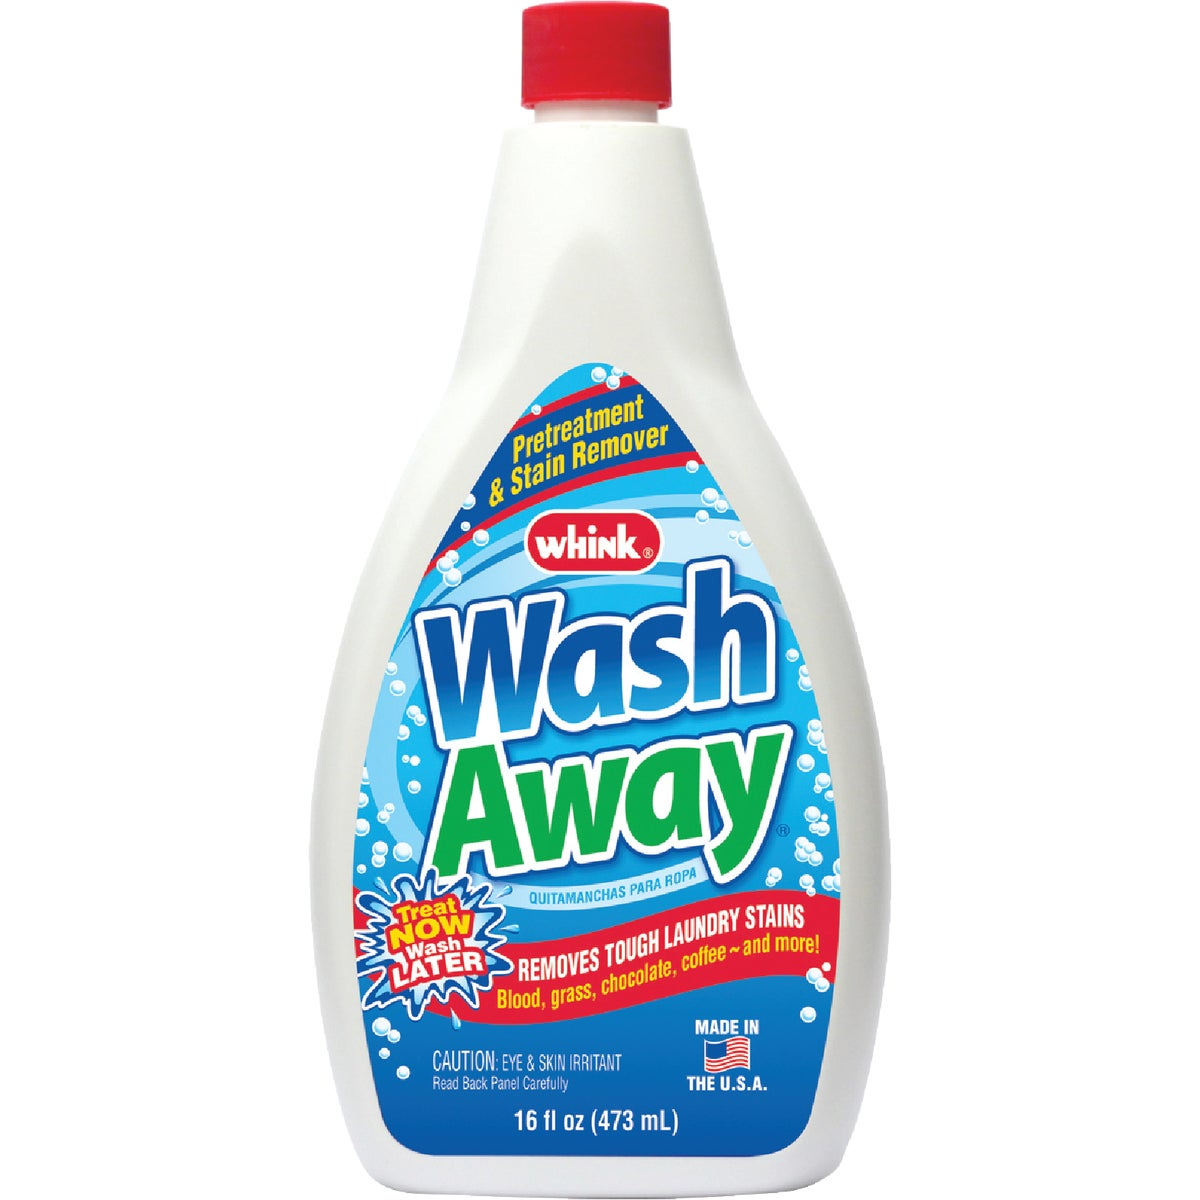 Whink Wash Away Laundry Stain Remover, 18261